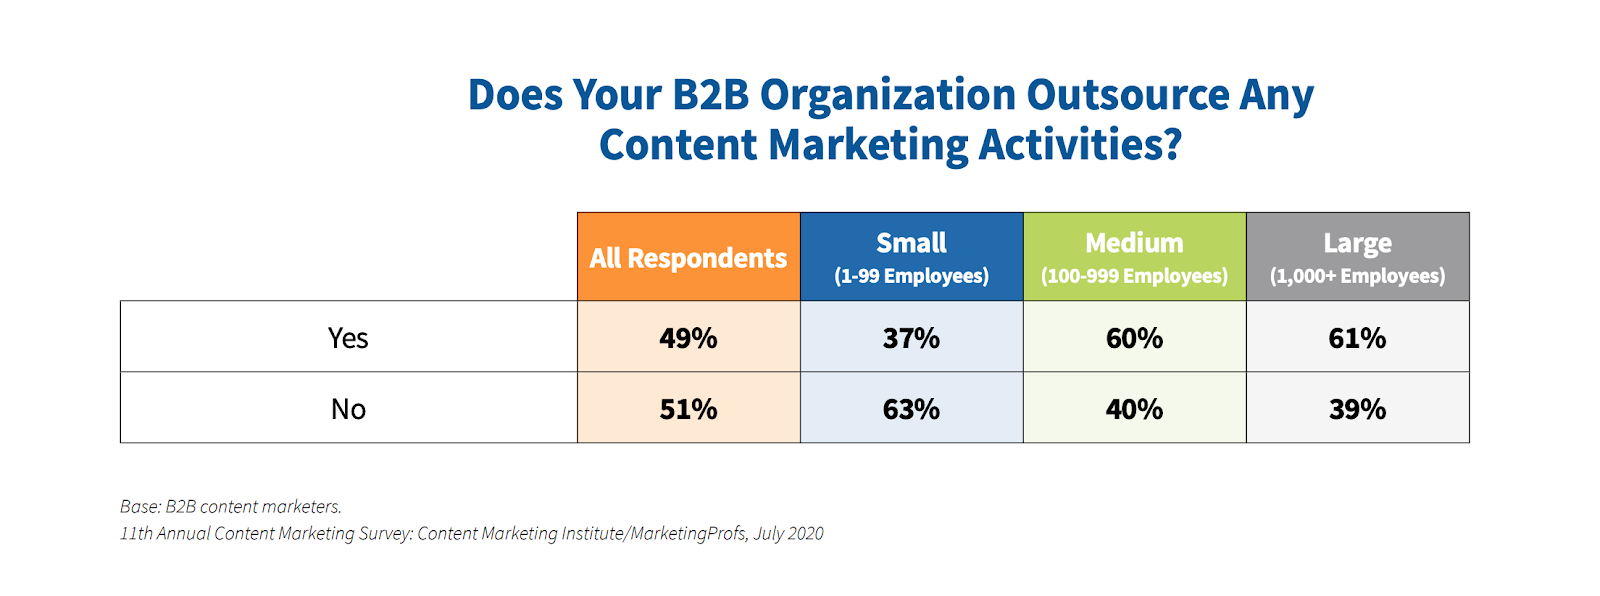 Does Your B2B Organization Outsource any content marketing activities